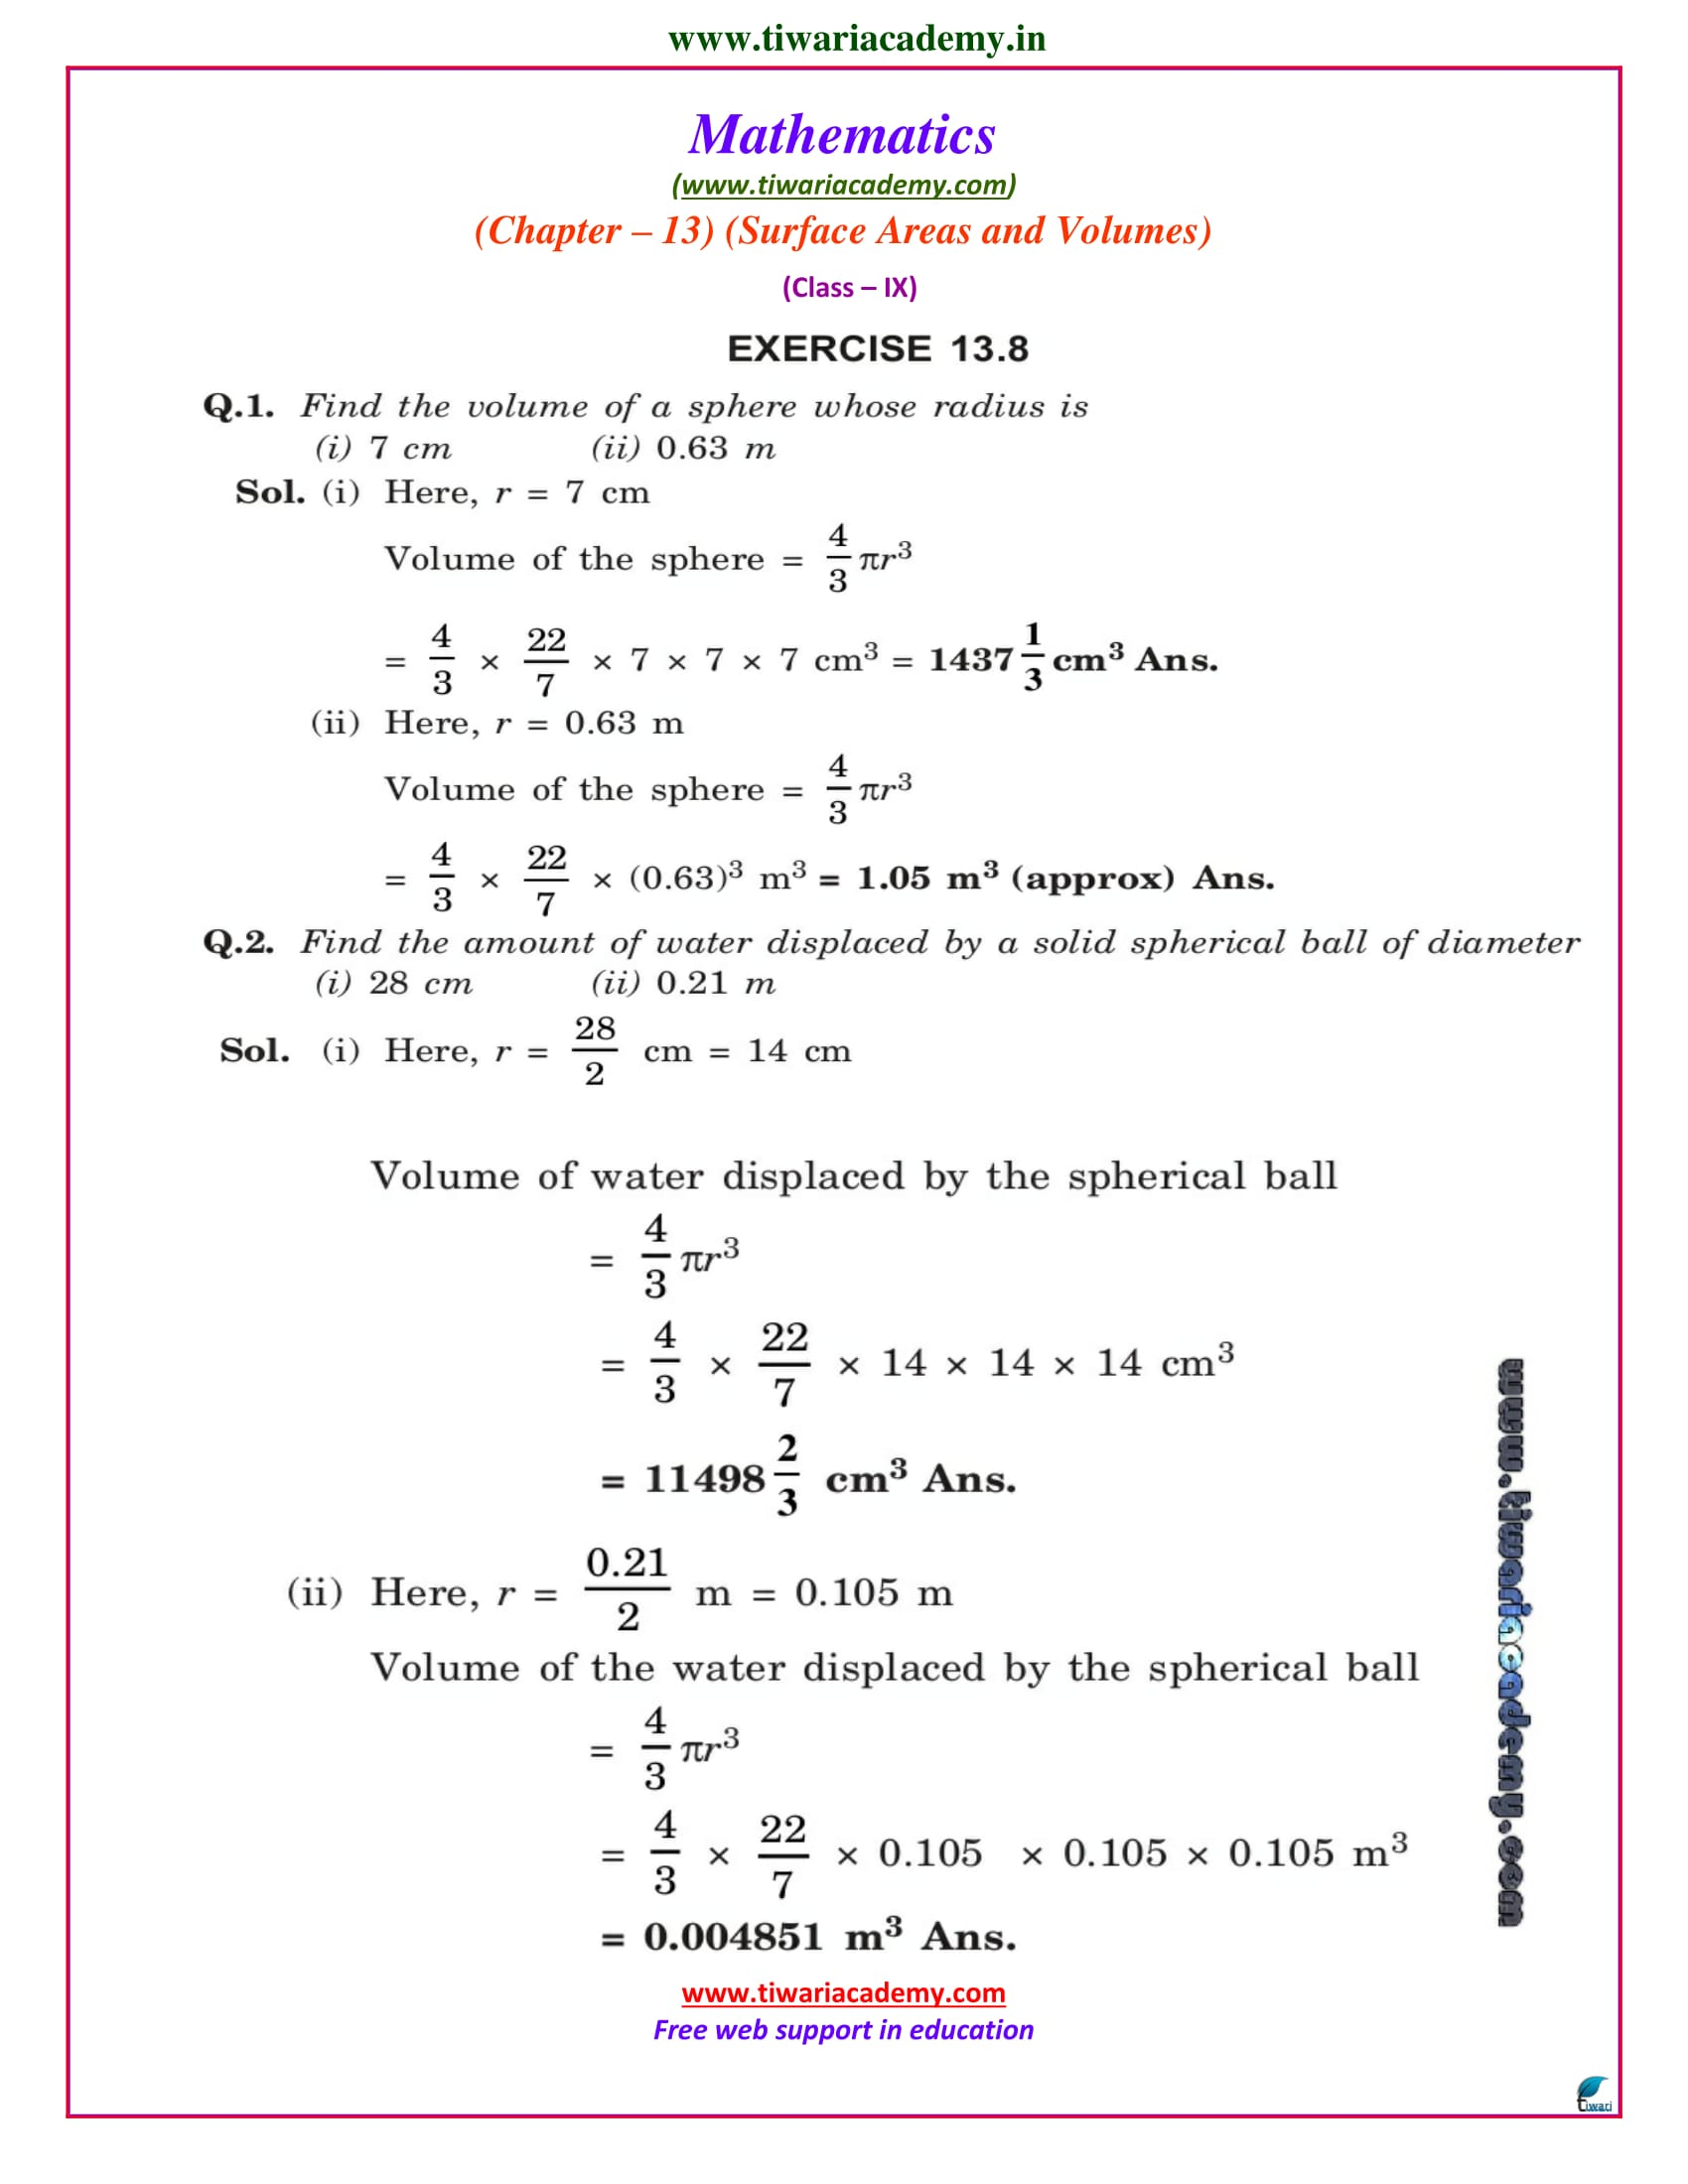 NCERT Solutions for Class 9 Maths Chapter 13 Exercise 13.8